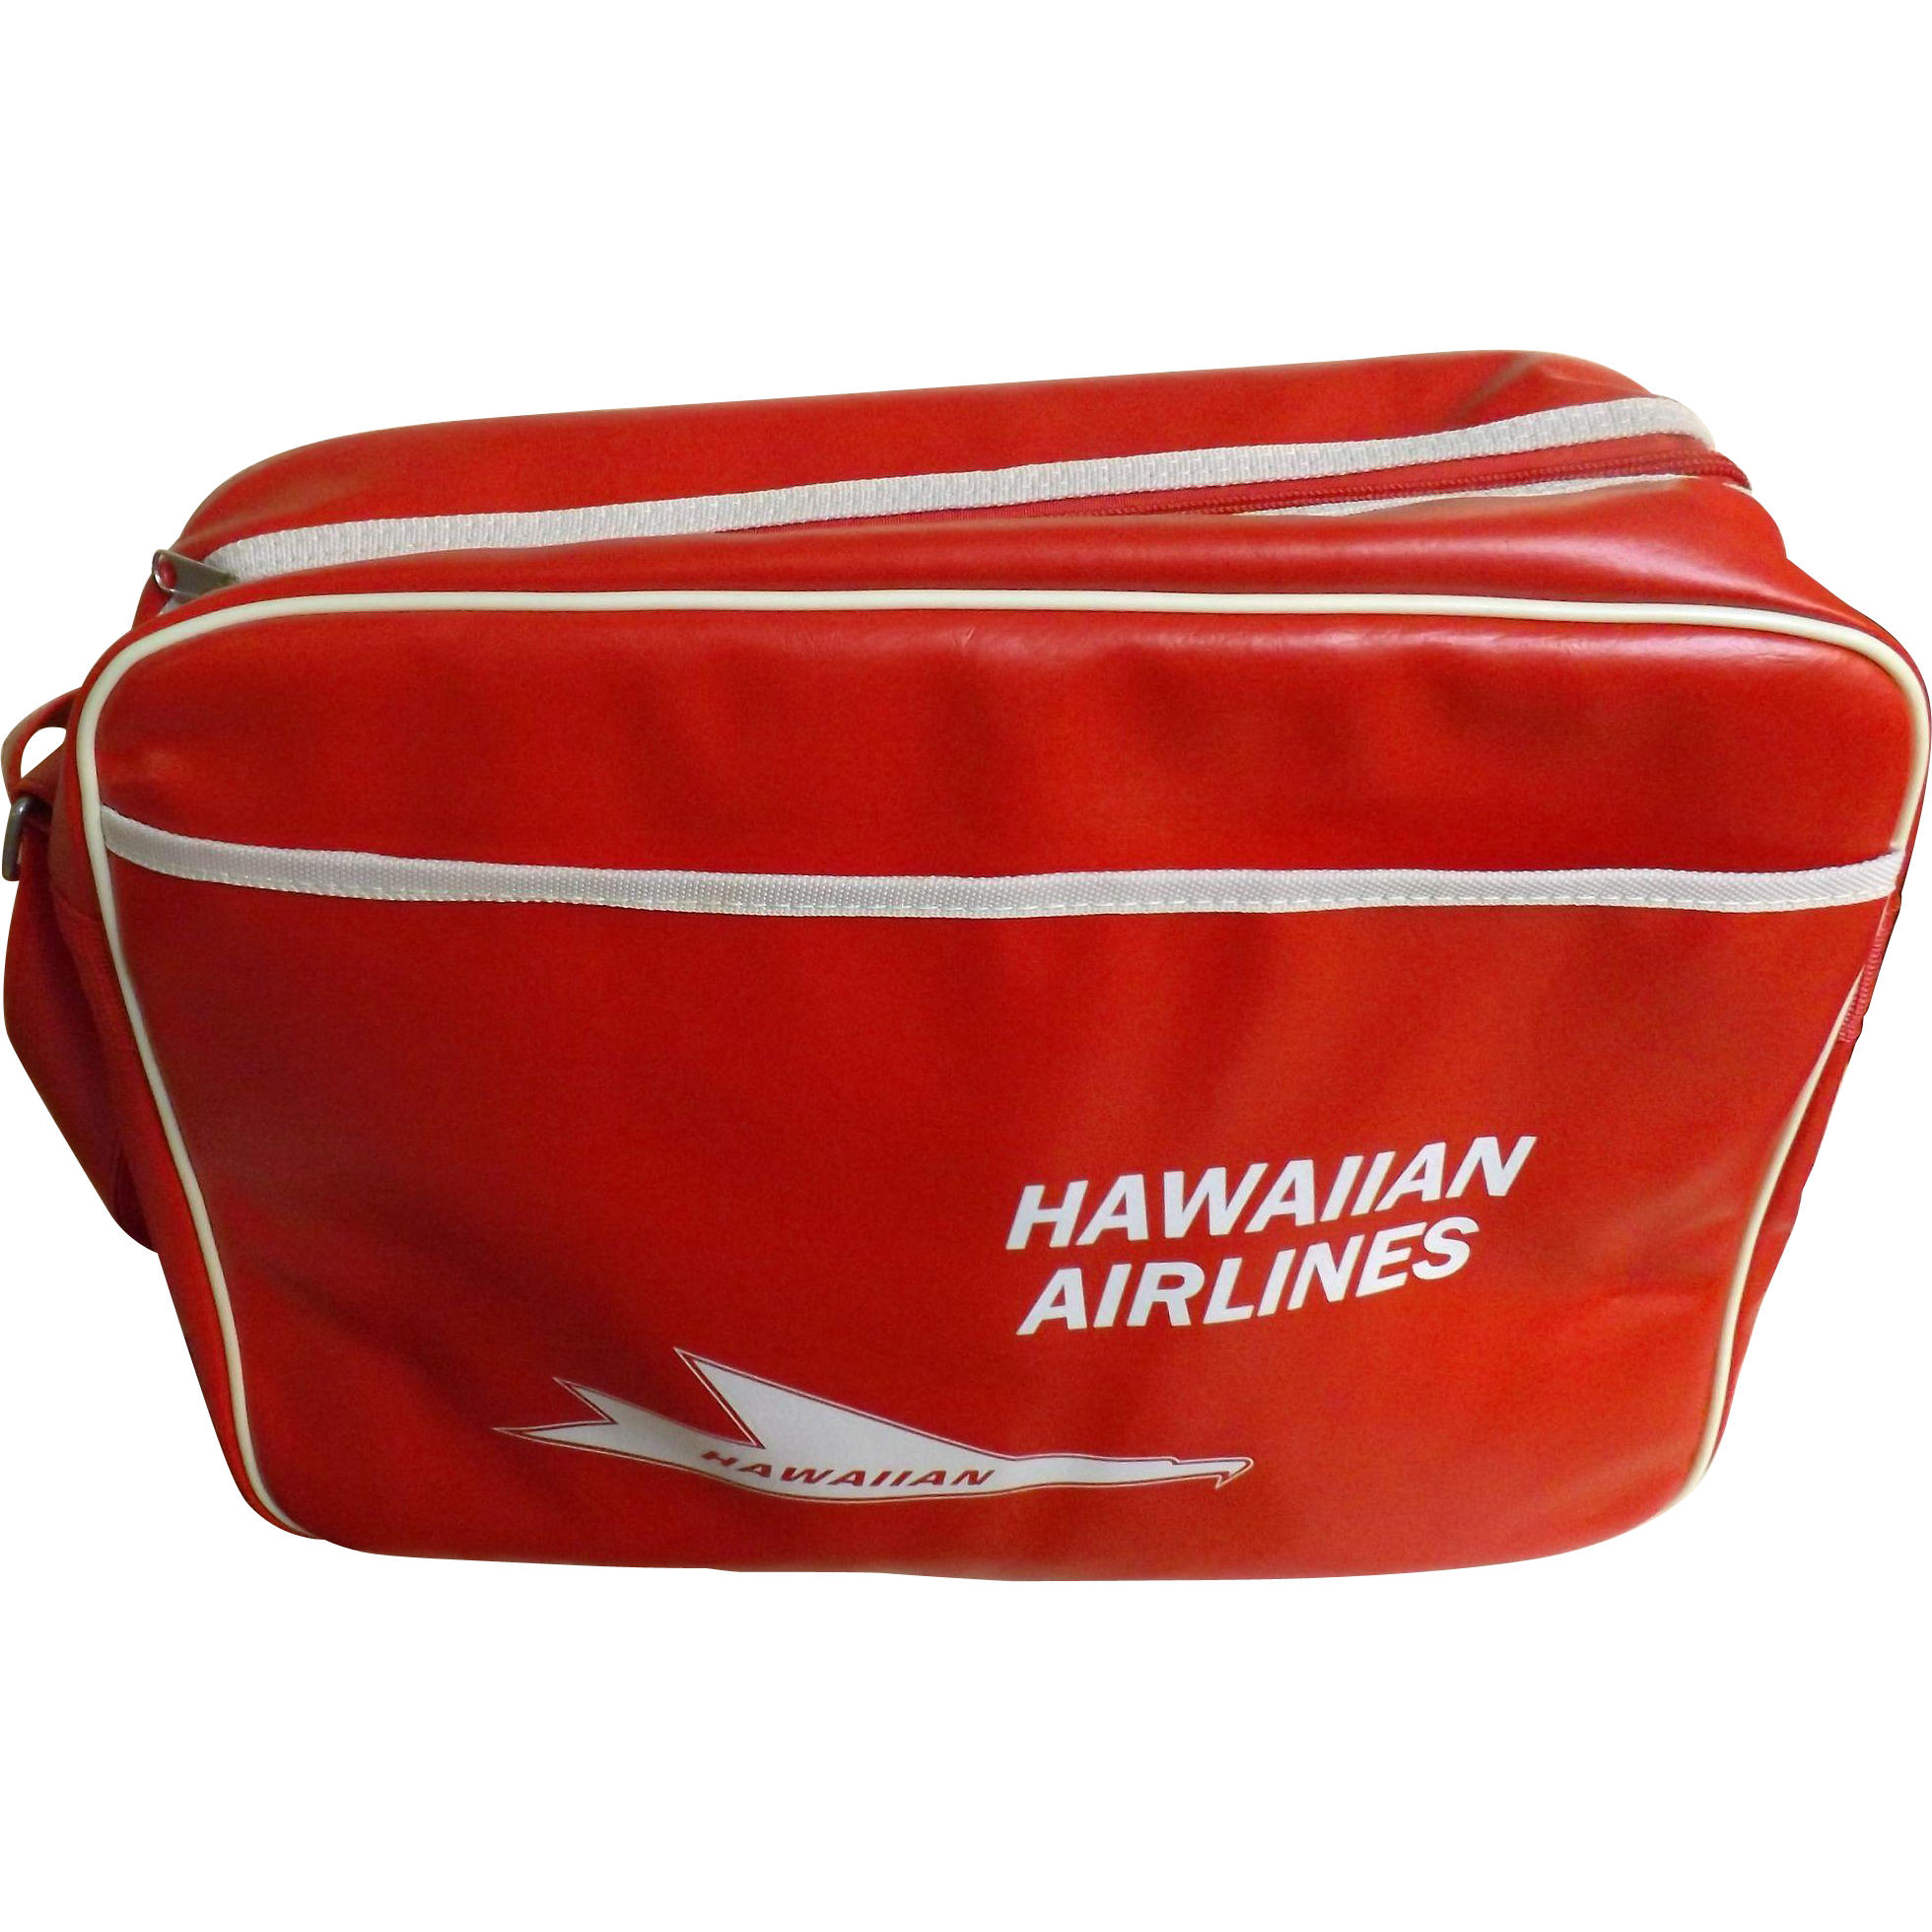 Hawaiian Airlines RETRO Cabin Bag